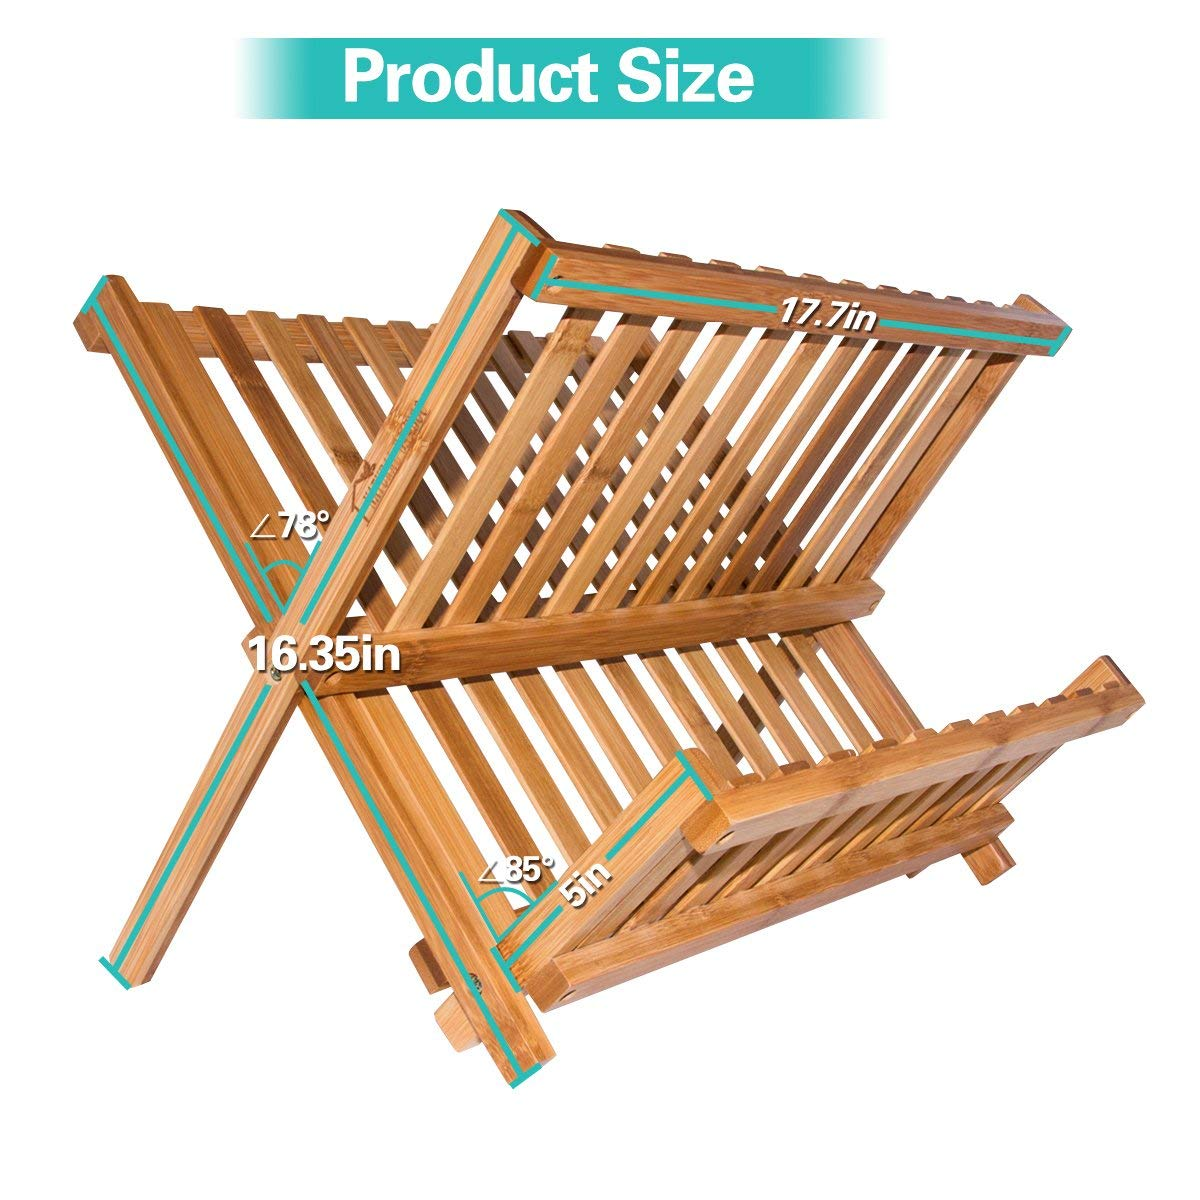 bamboo dish drying rack BR-18070615 Details 5